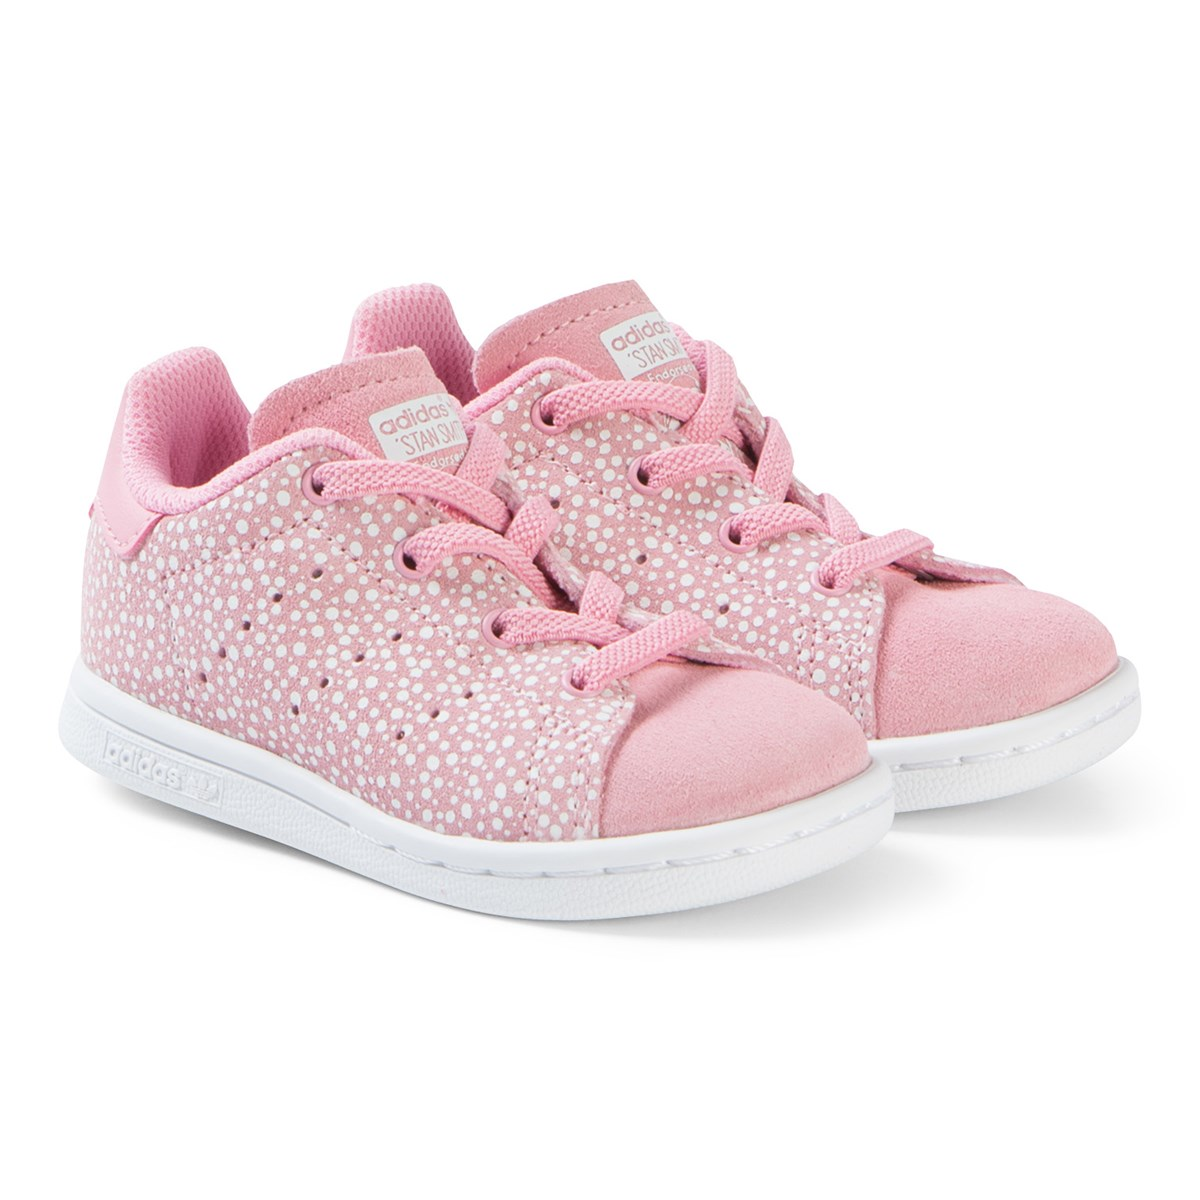 sale retailer acb5c 520bd adidas Originals - Pink and White Stan Smith Sneakers - Babyshop.com